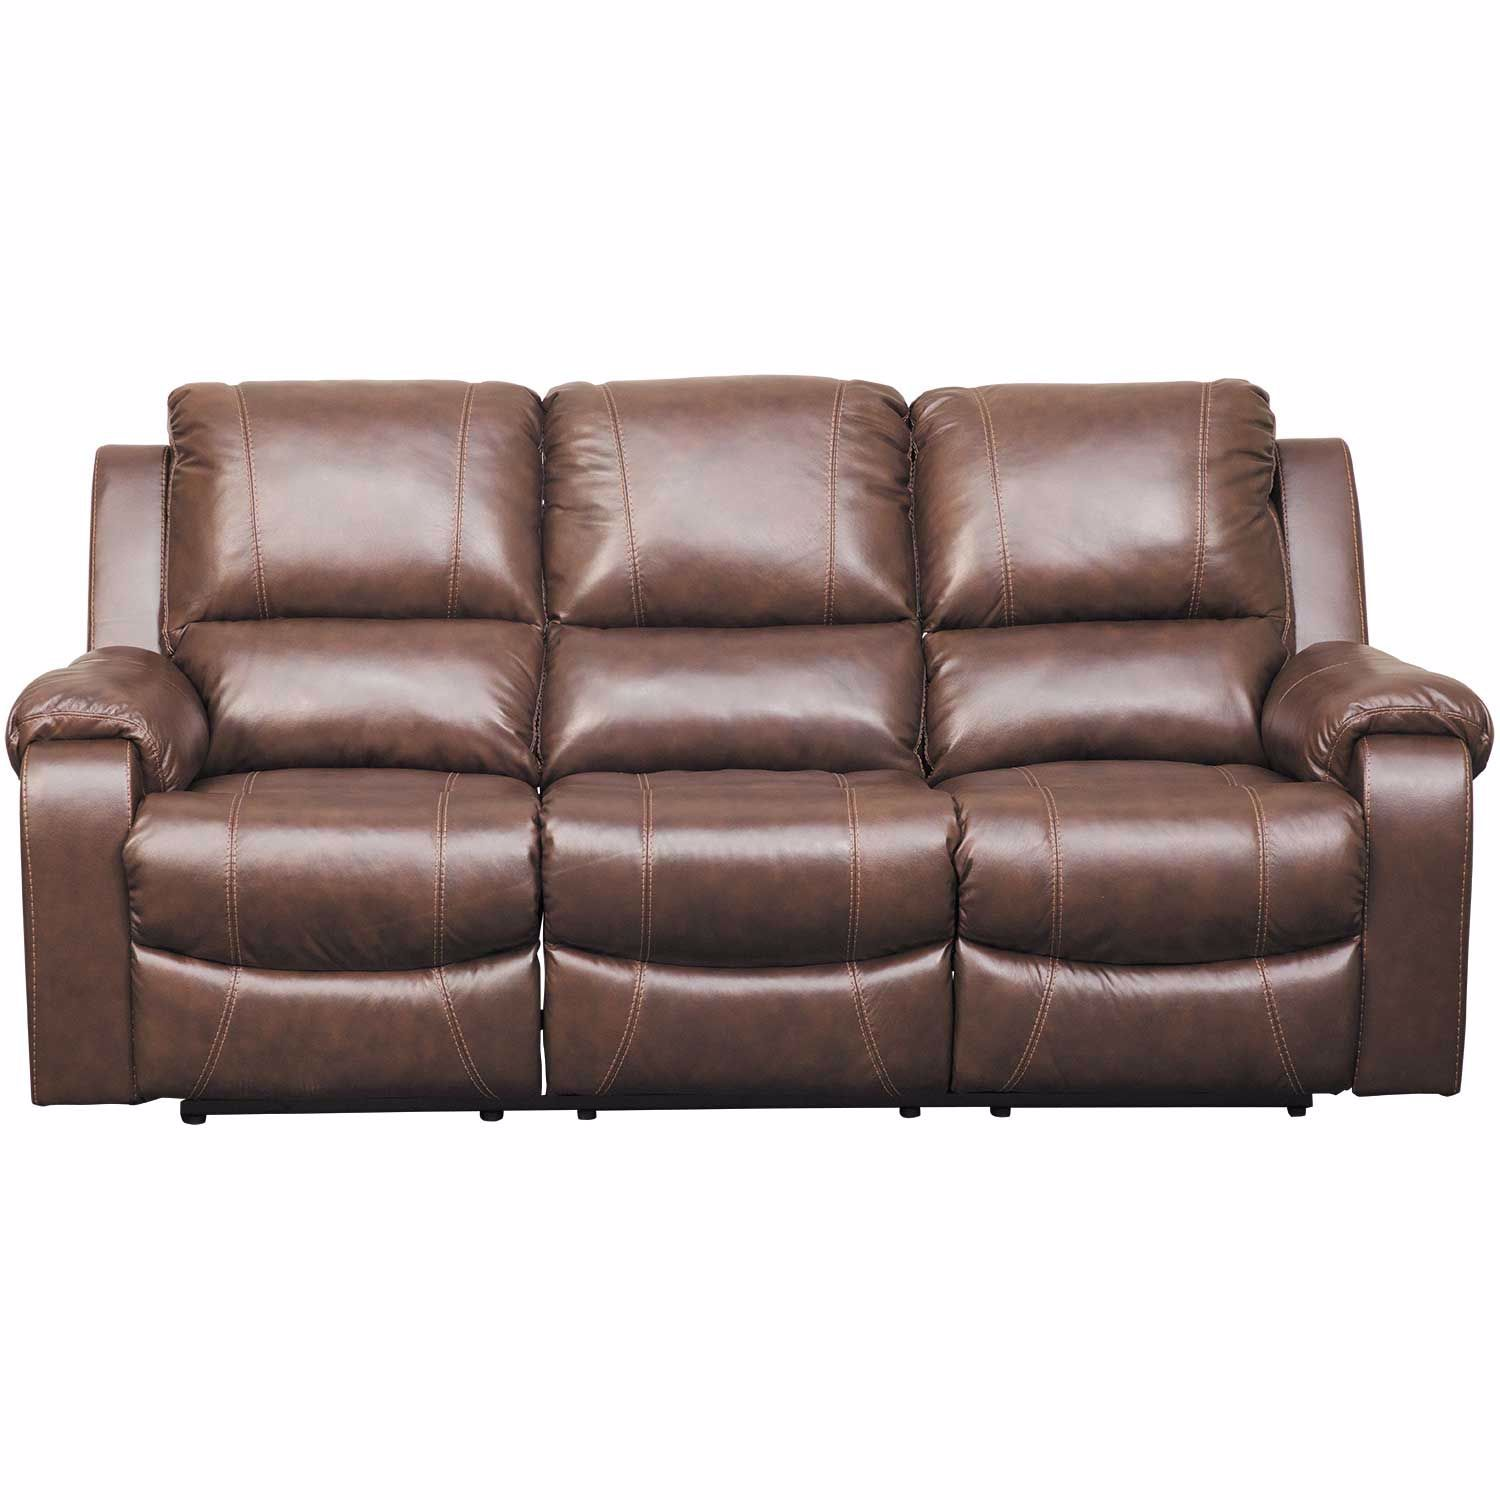 Rackingburg Mahogany Leather Reclining Sofa U3330188 Ashley